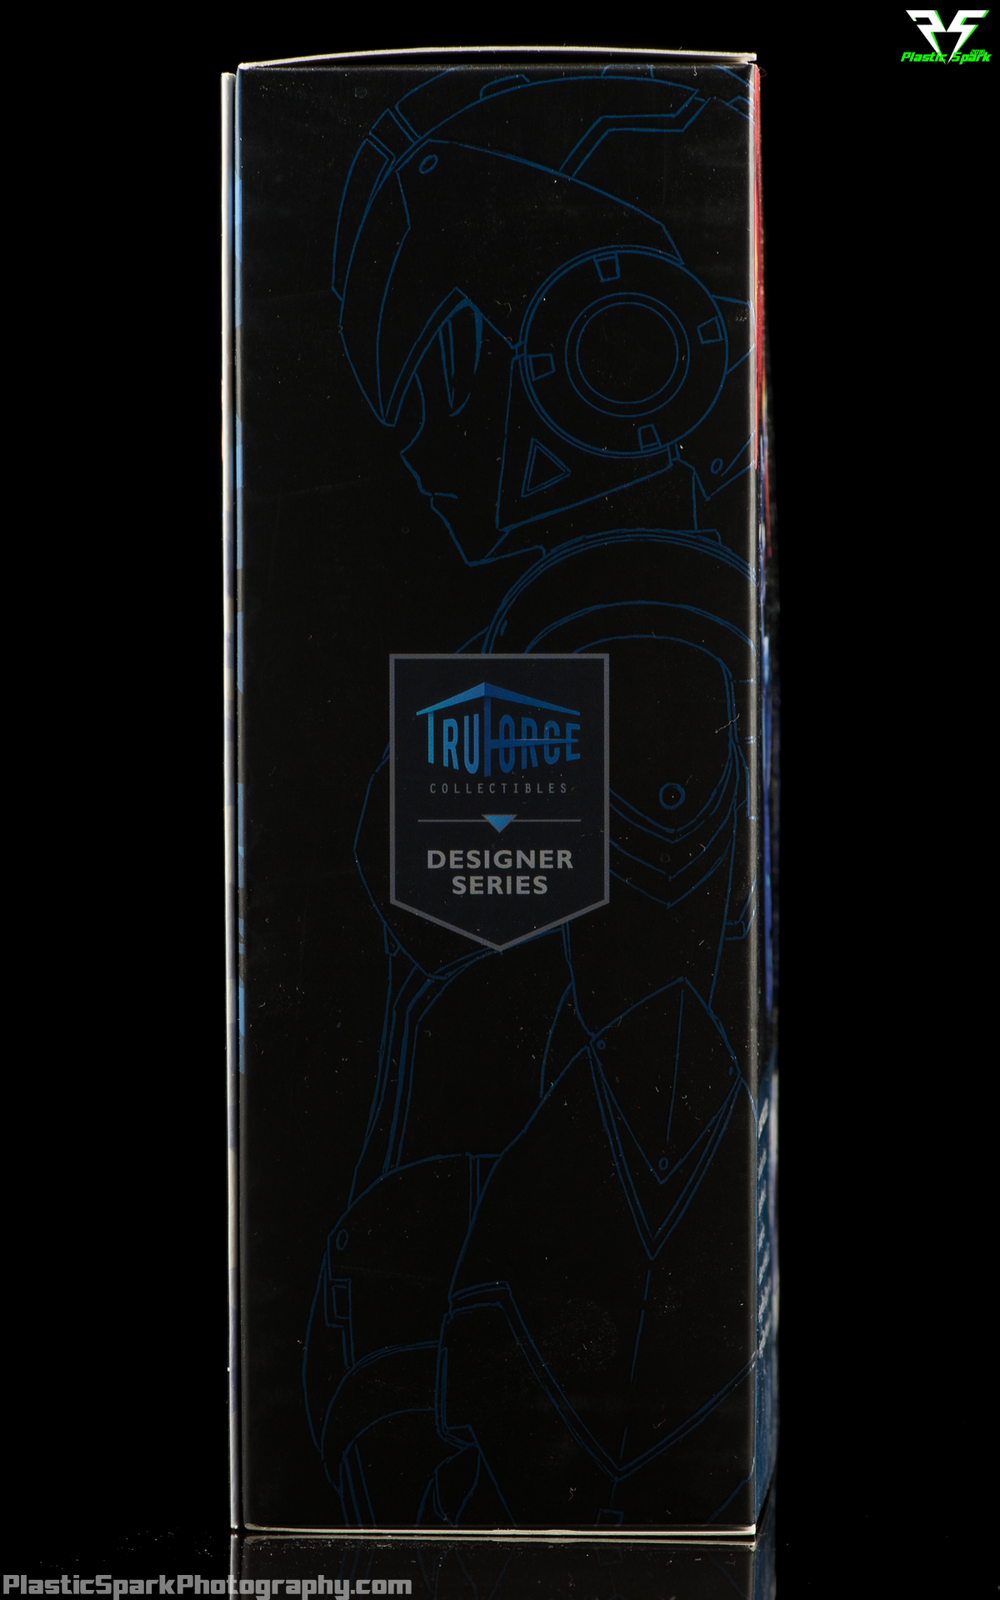 Truforce-Megaman-X-Packaging-(4-of-6).png